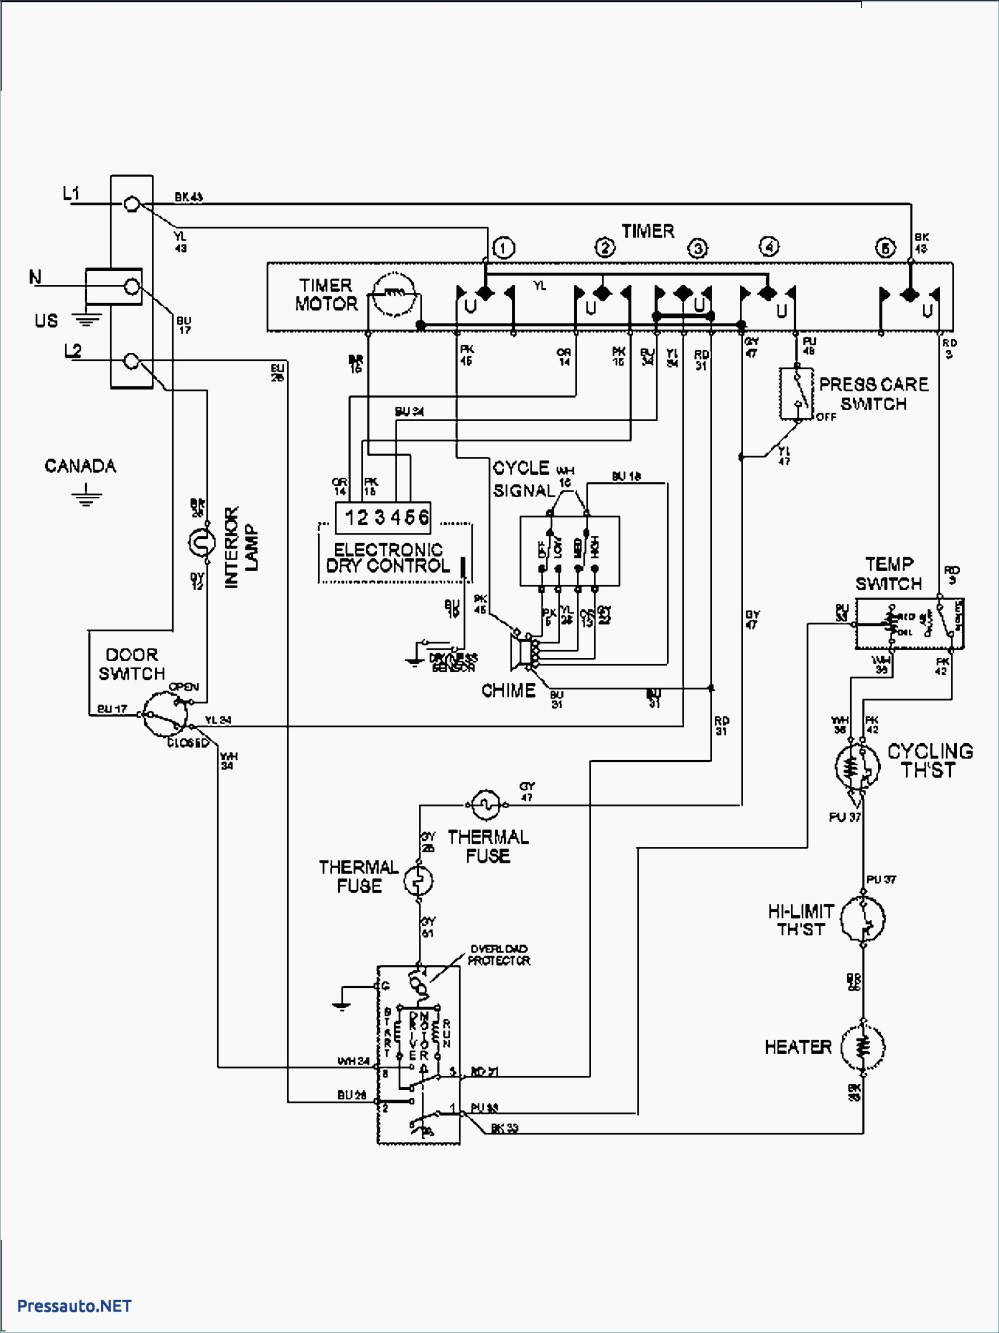 medium resolution of diagram dryer wiring whirlpool le7010 data schematic diagram diagram dryer wiring whirlpool lg5551xtwo home wiring diagram